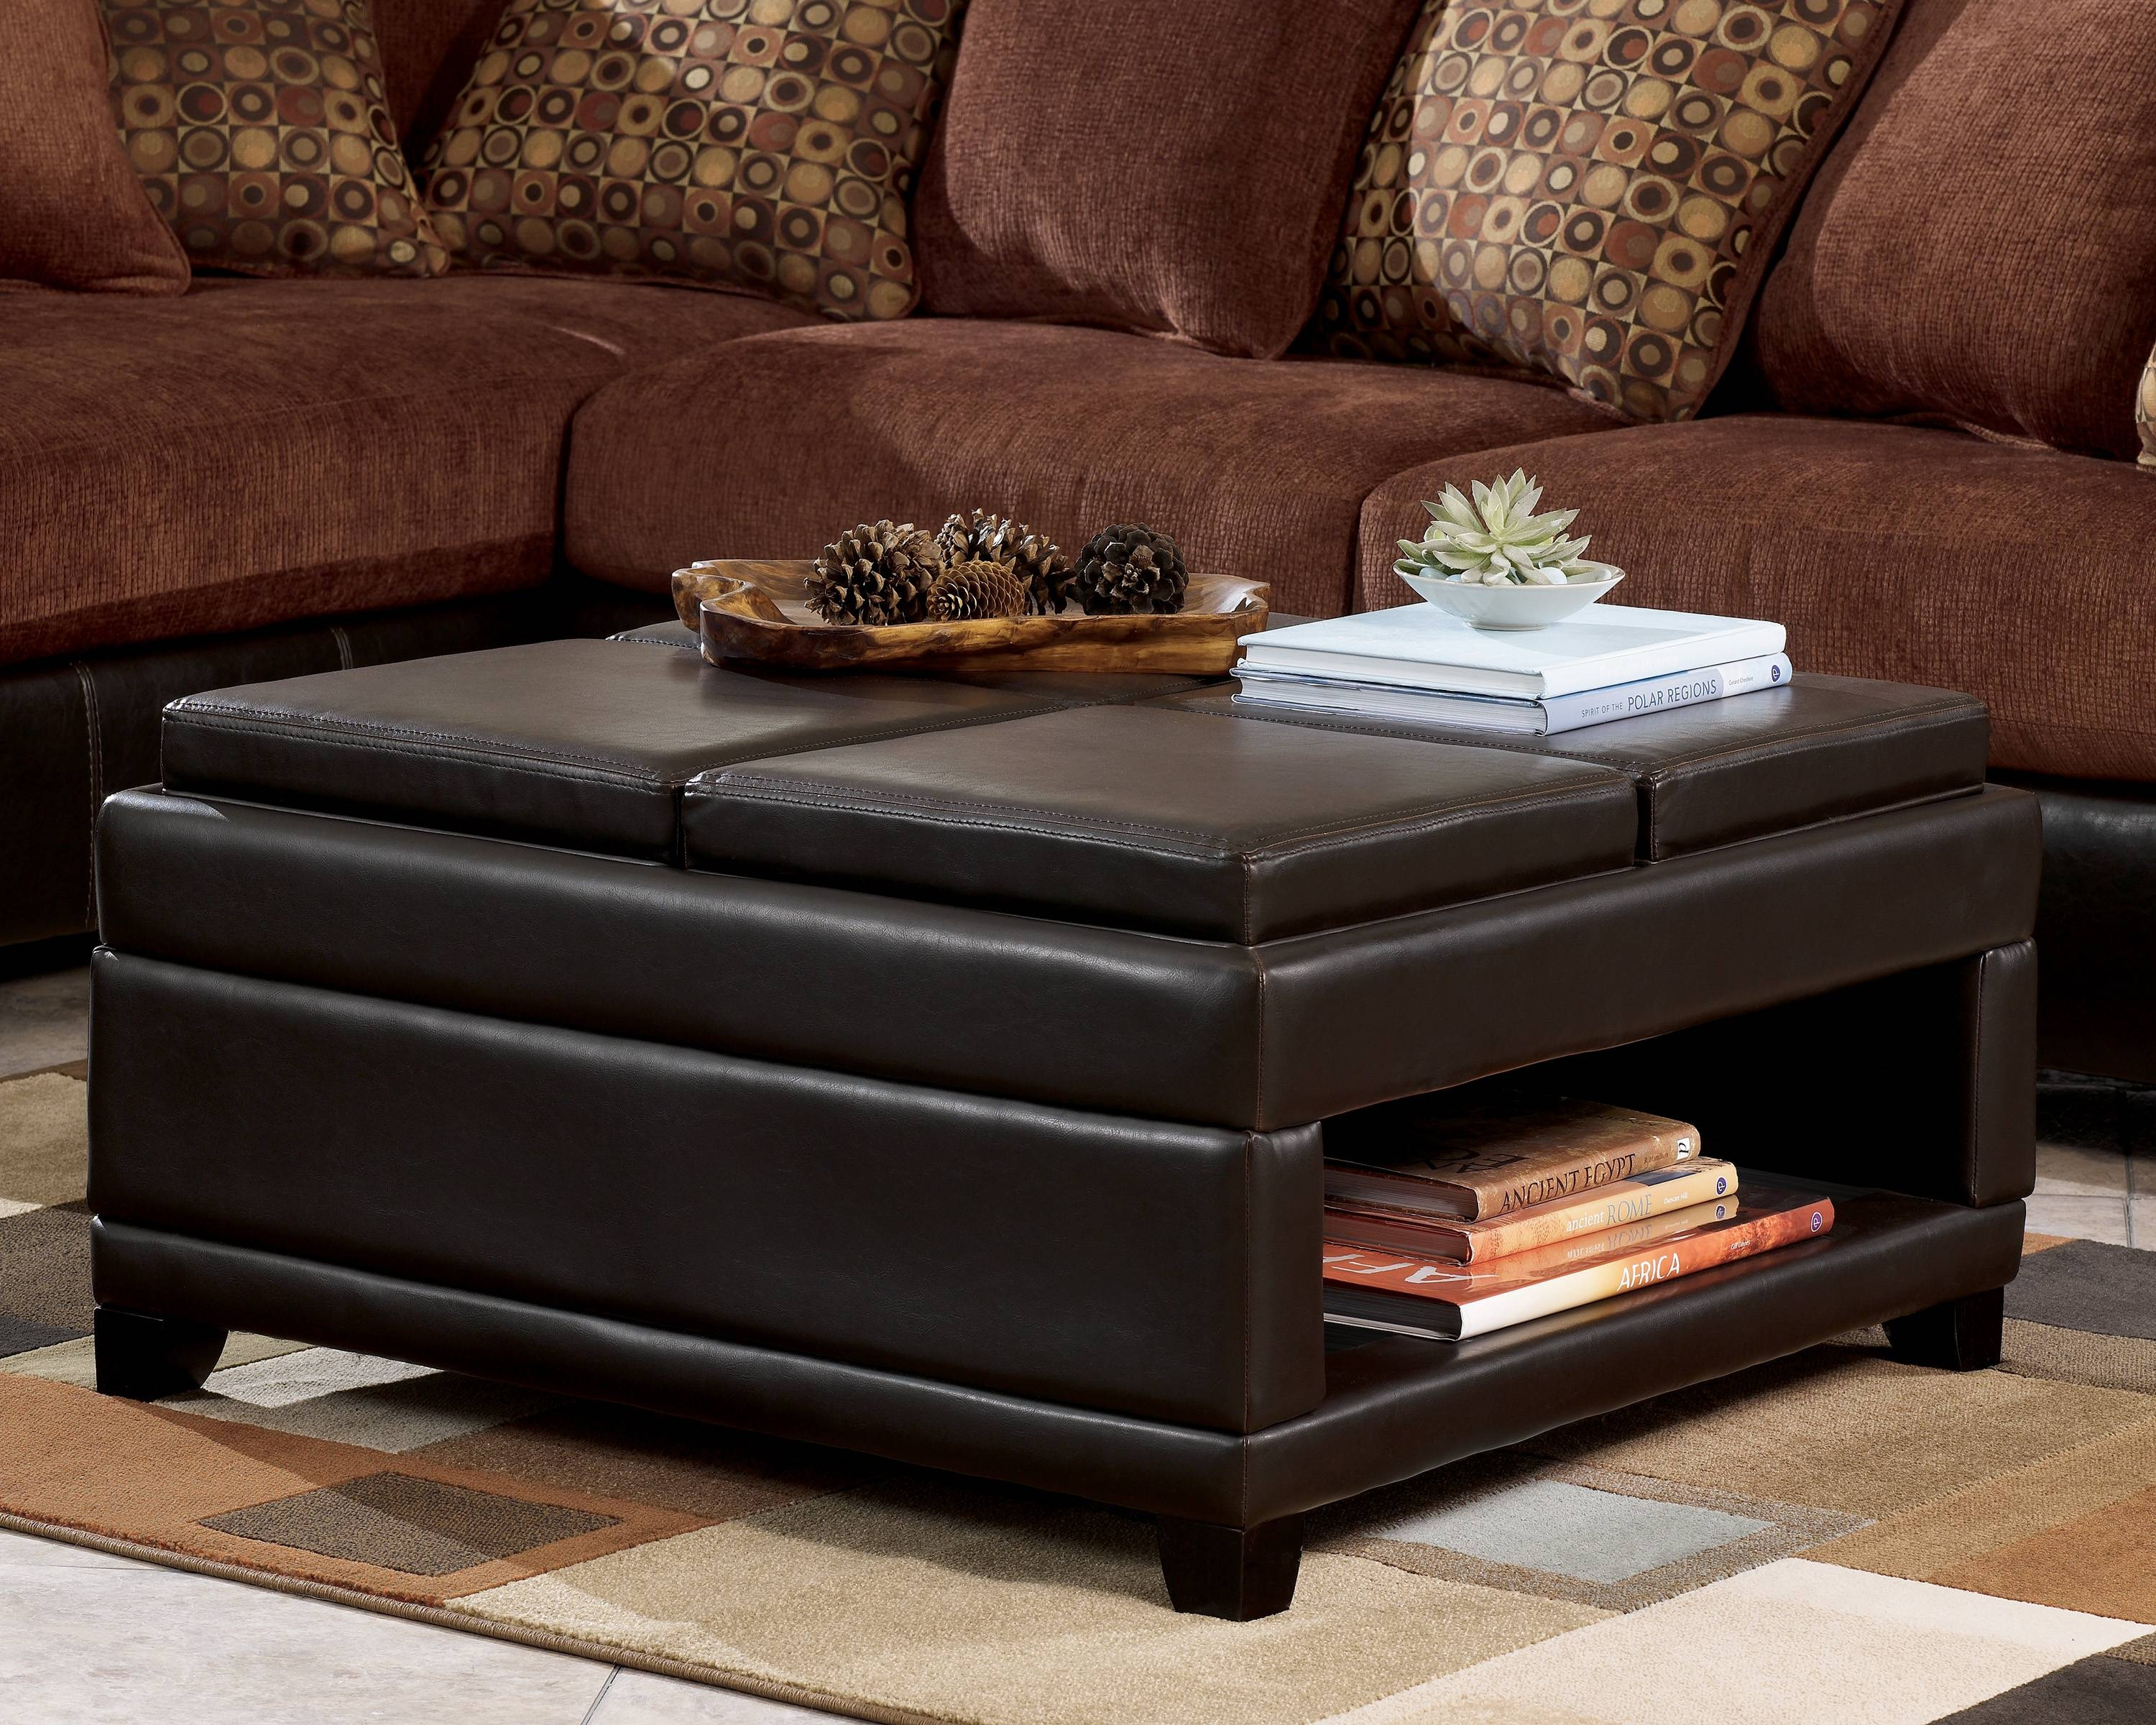 Black Ottoman Coffee Table With Storage | Coffee Tables Decoration inside Square Coffee Tables With Storage (Image 1 of 30)